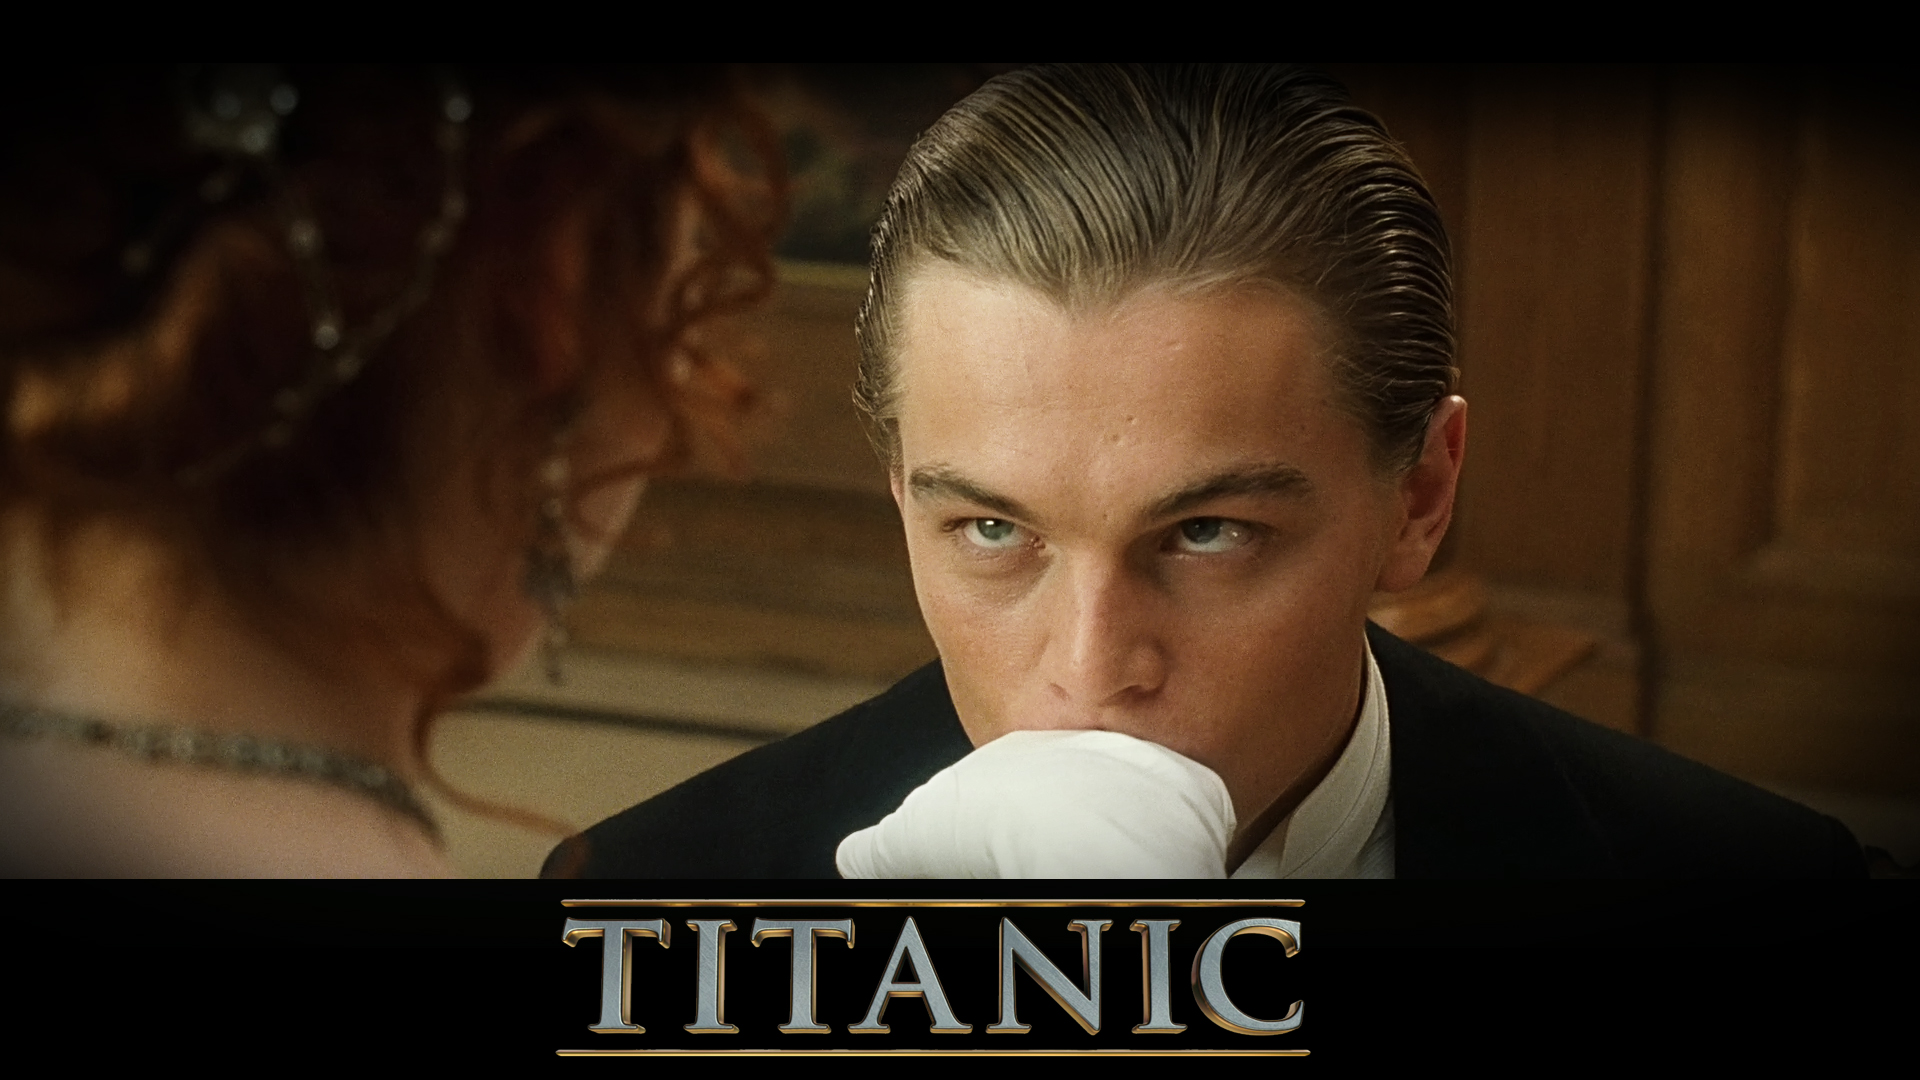 Titanic 3D wallpaper 2